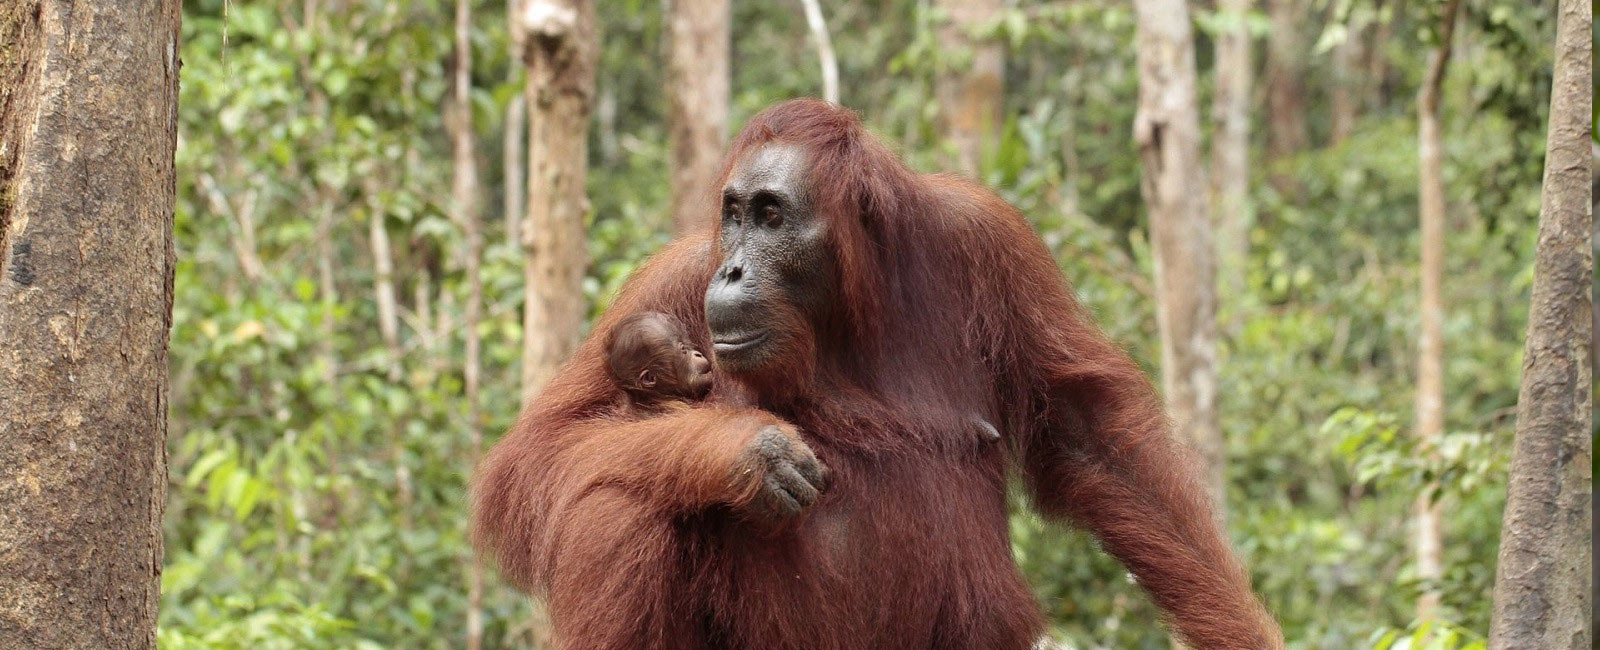 sumatran orangutan facts